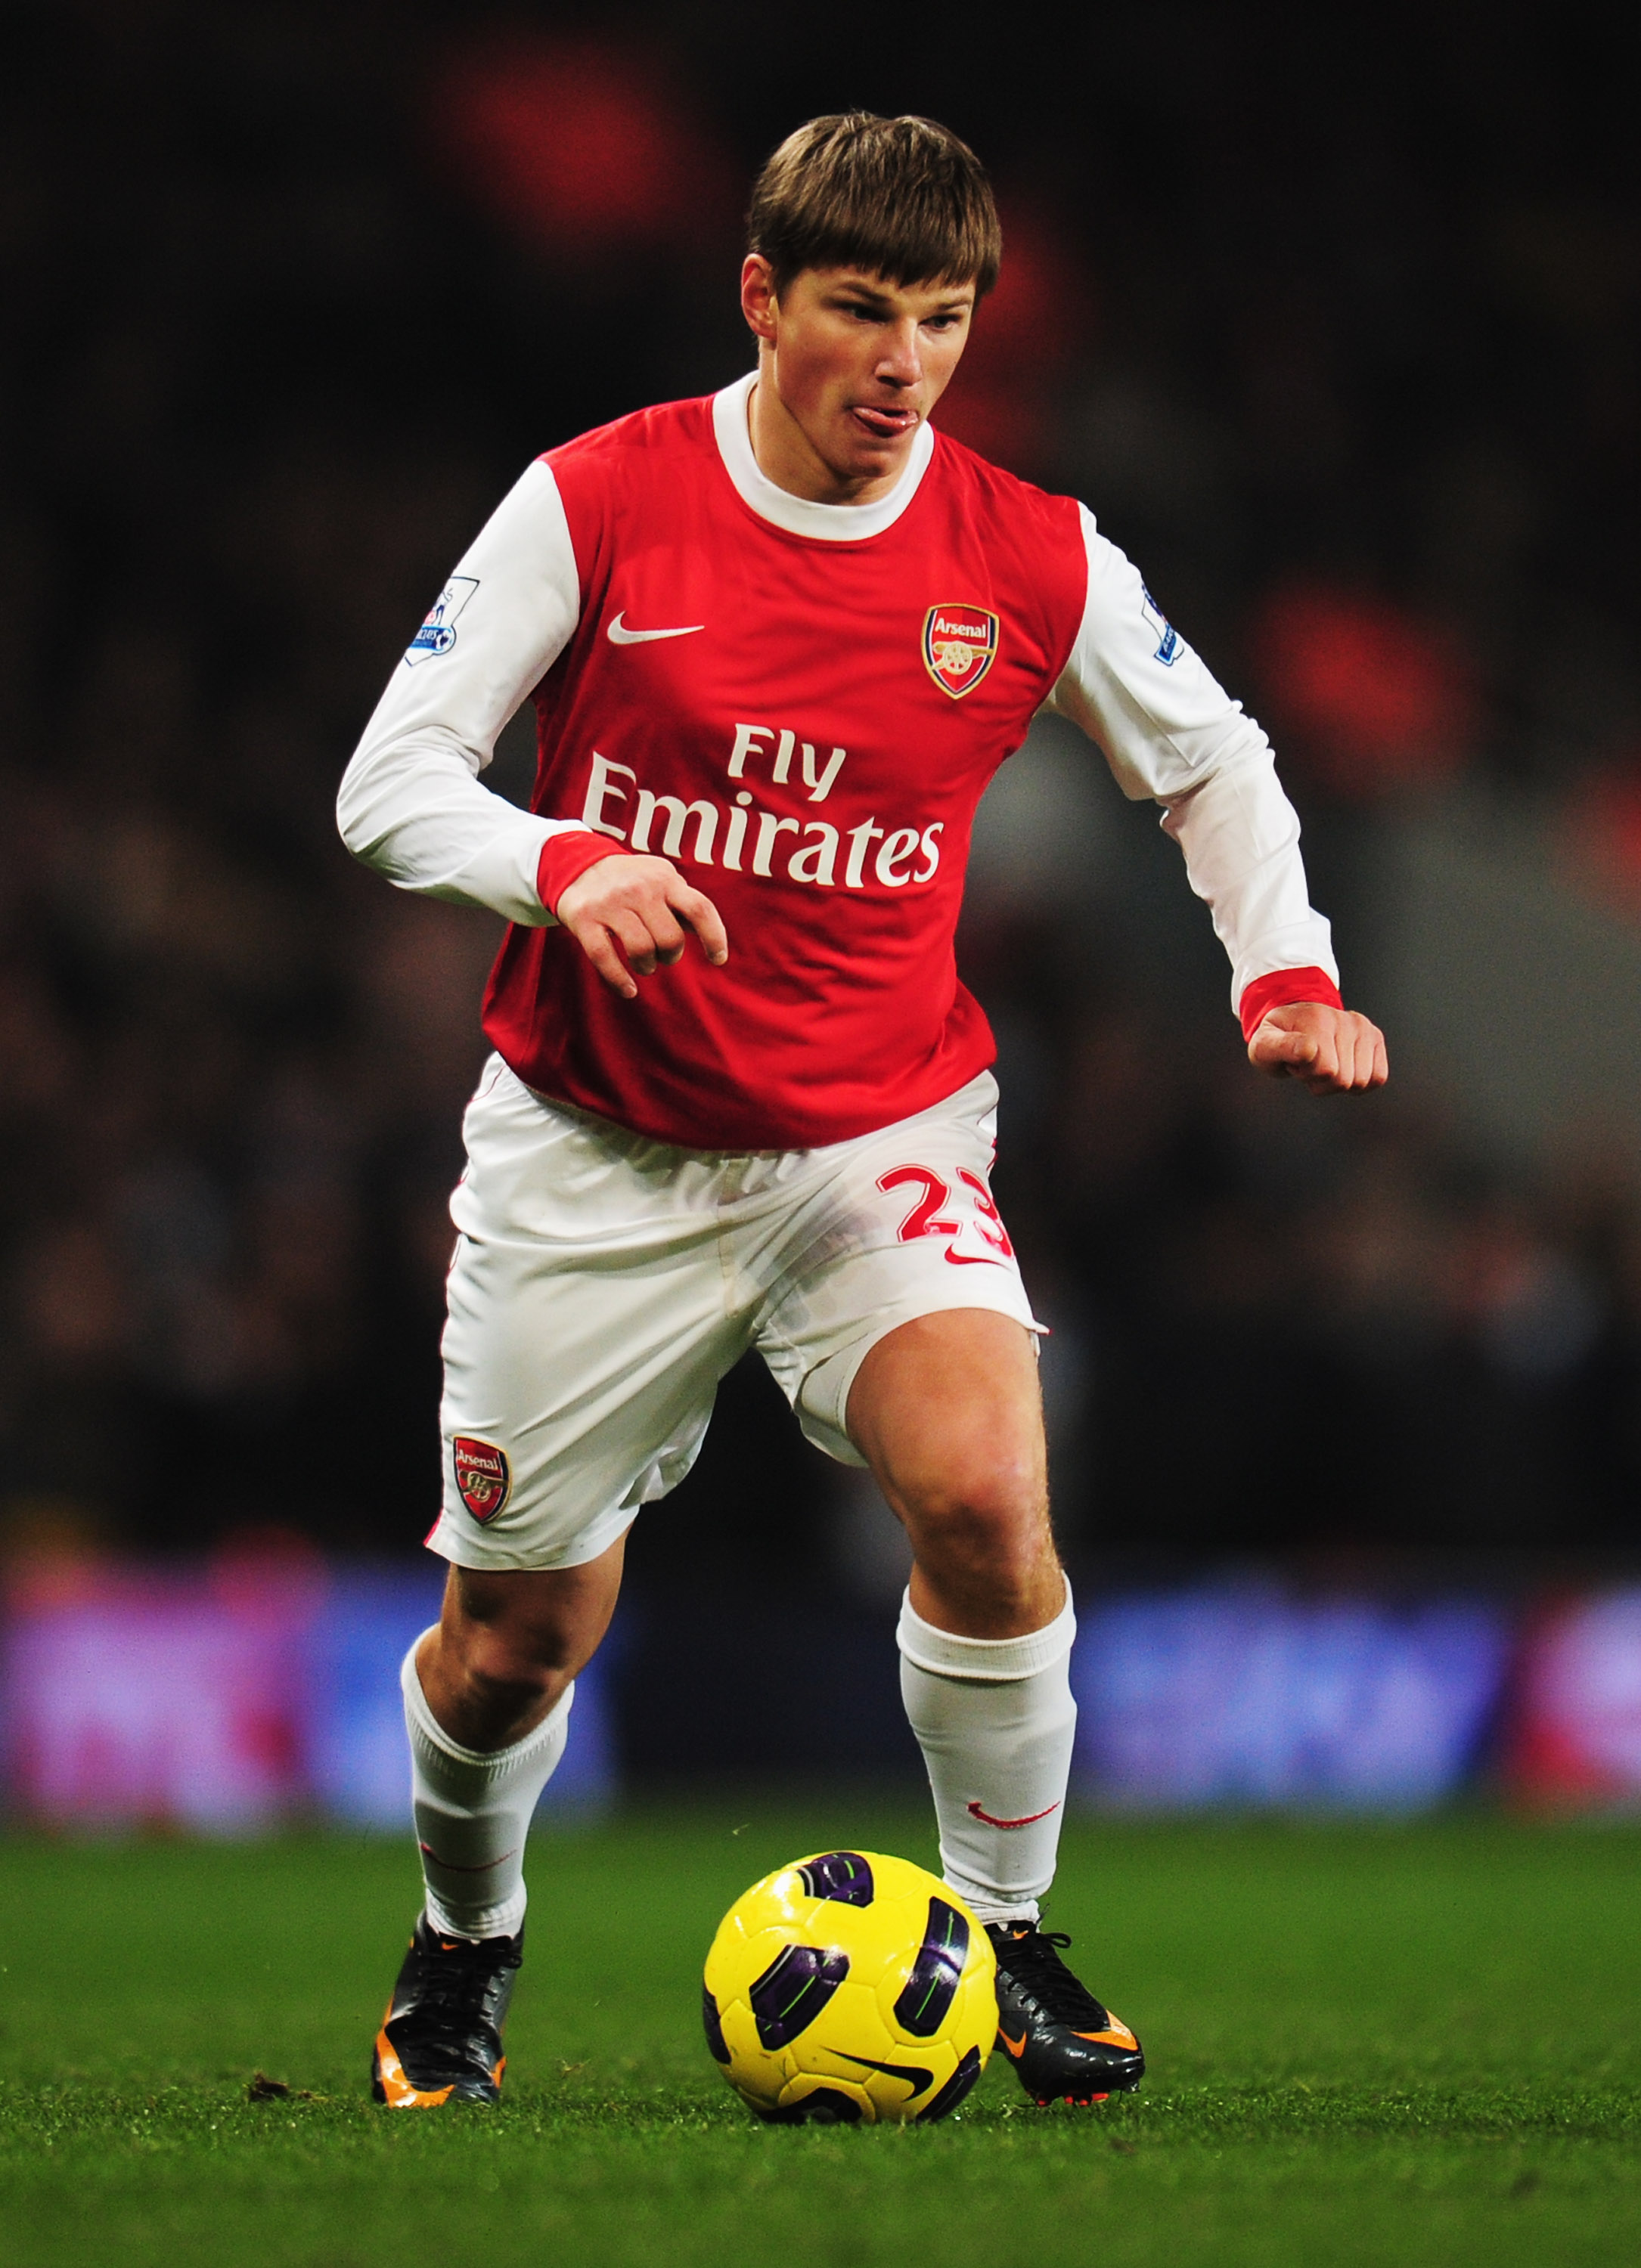 LONDON, ENGLAND - JANUARY 05:  Andrey Arshavin of Arsenal in action during the Barclays Premier League match between Arsenal and Manchester City at the Emirates Stadium on January 5, 2011 in London, England.  (Photo by Shaun Botterill/Getty Images)